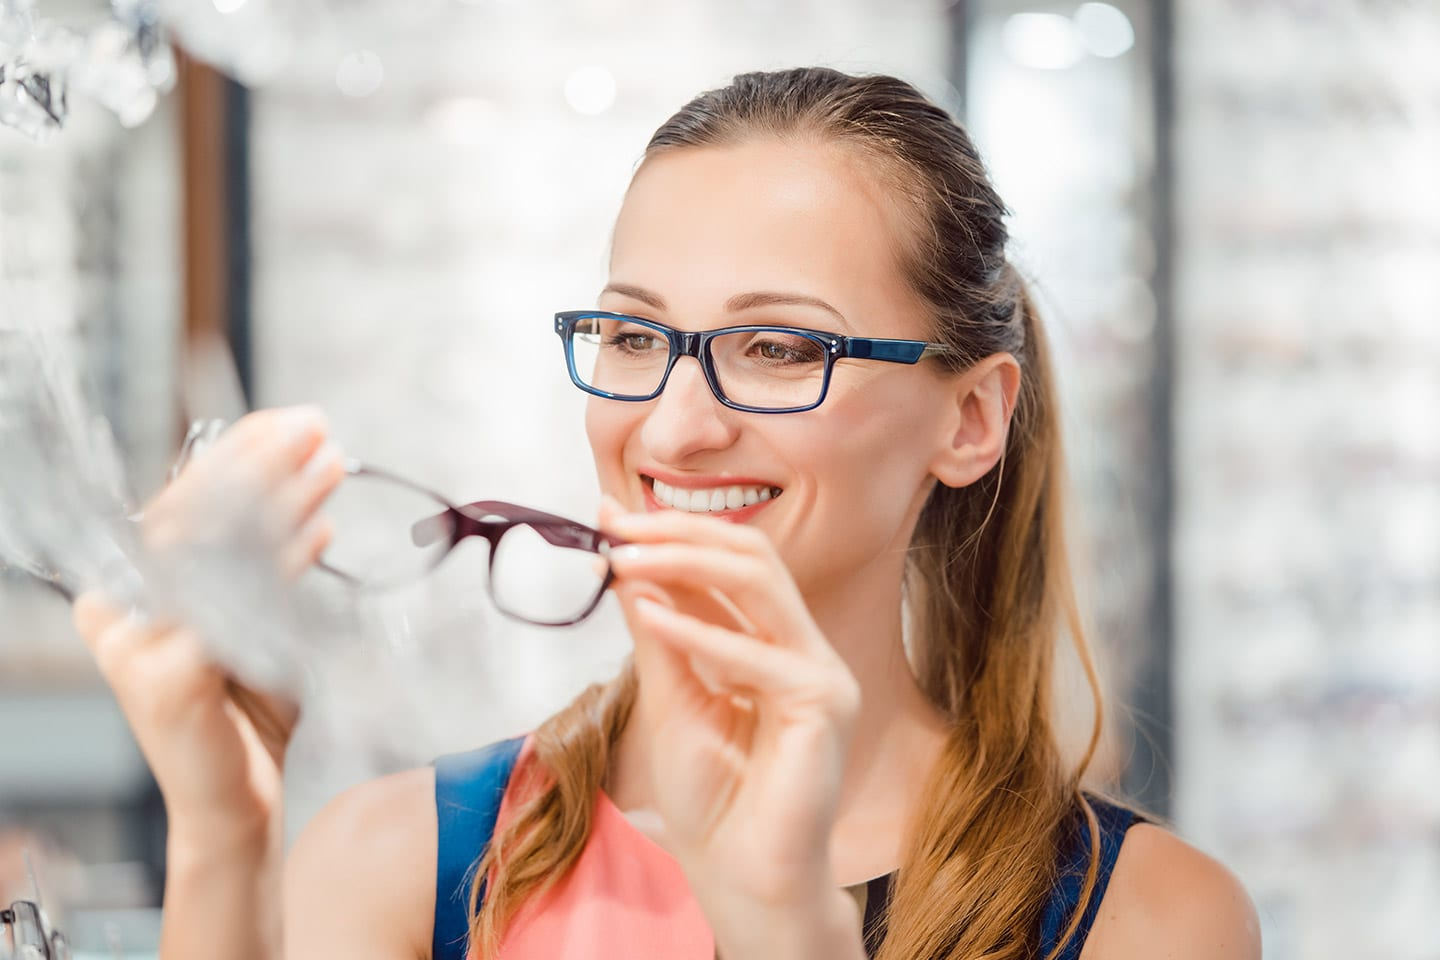 How to Find the Perfect Pair of Glasses